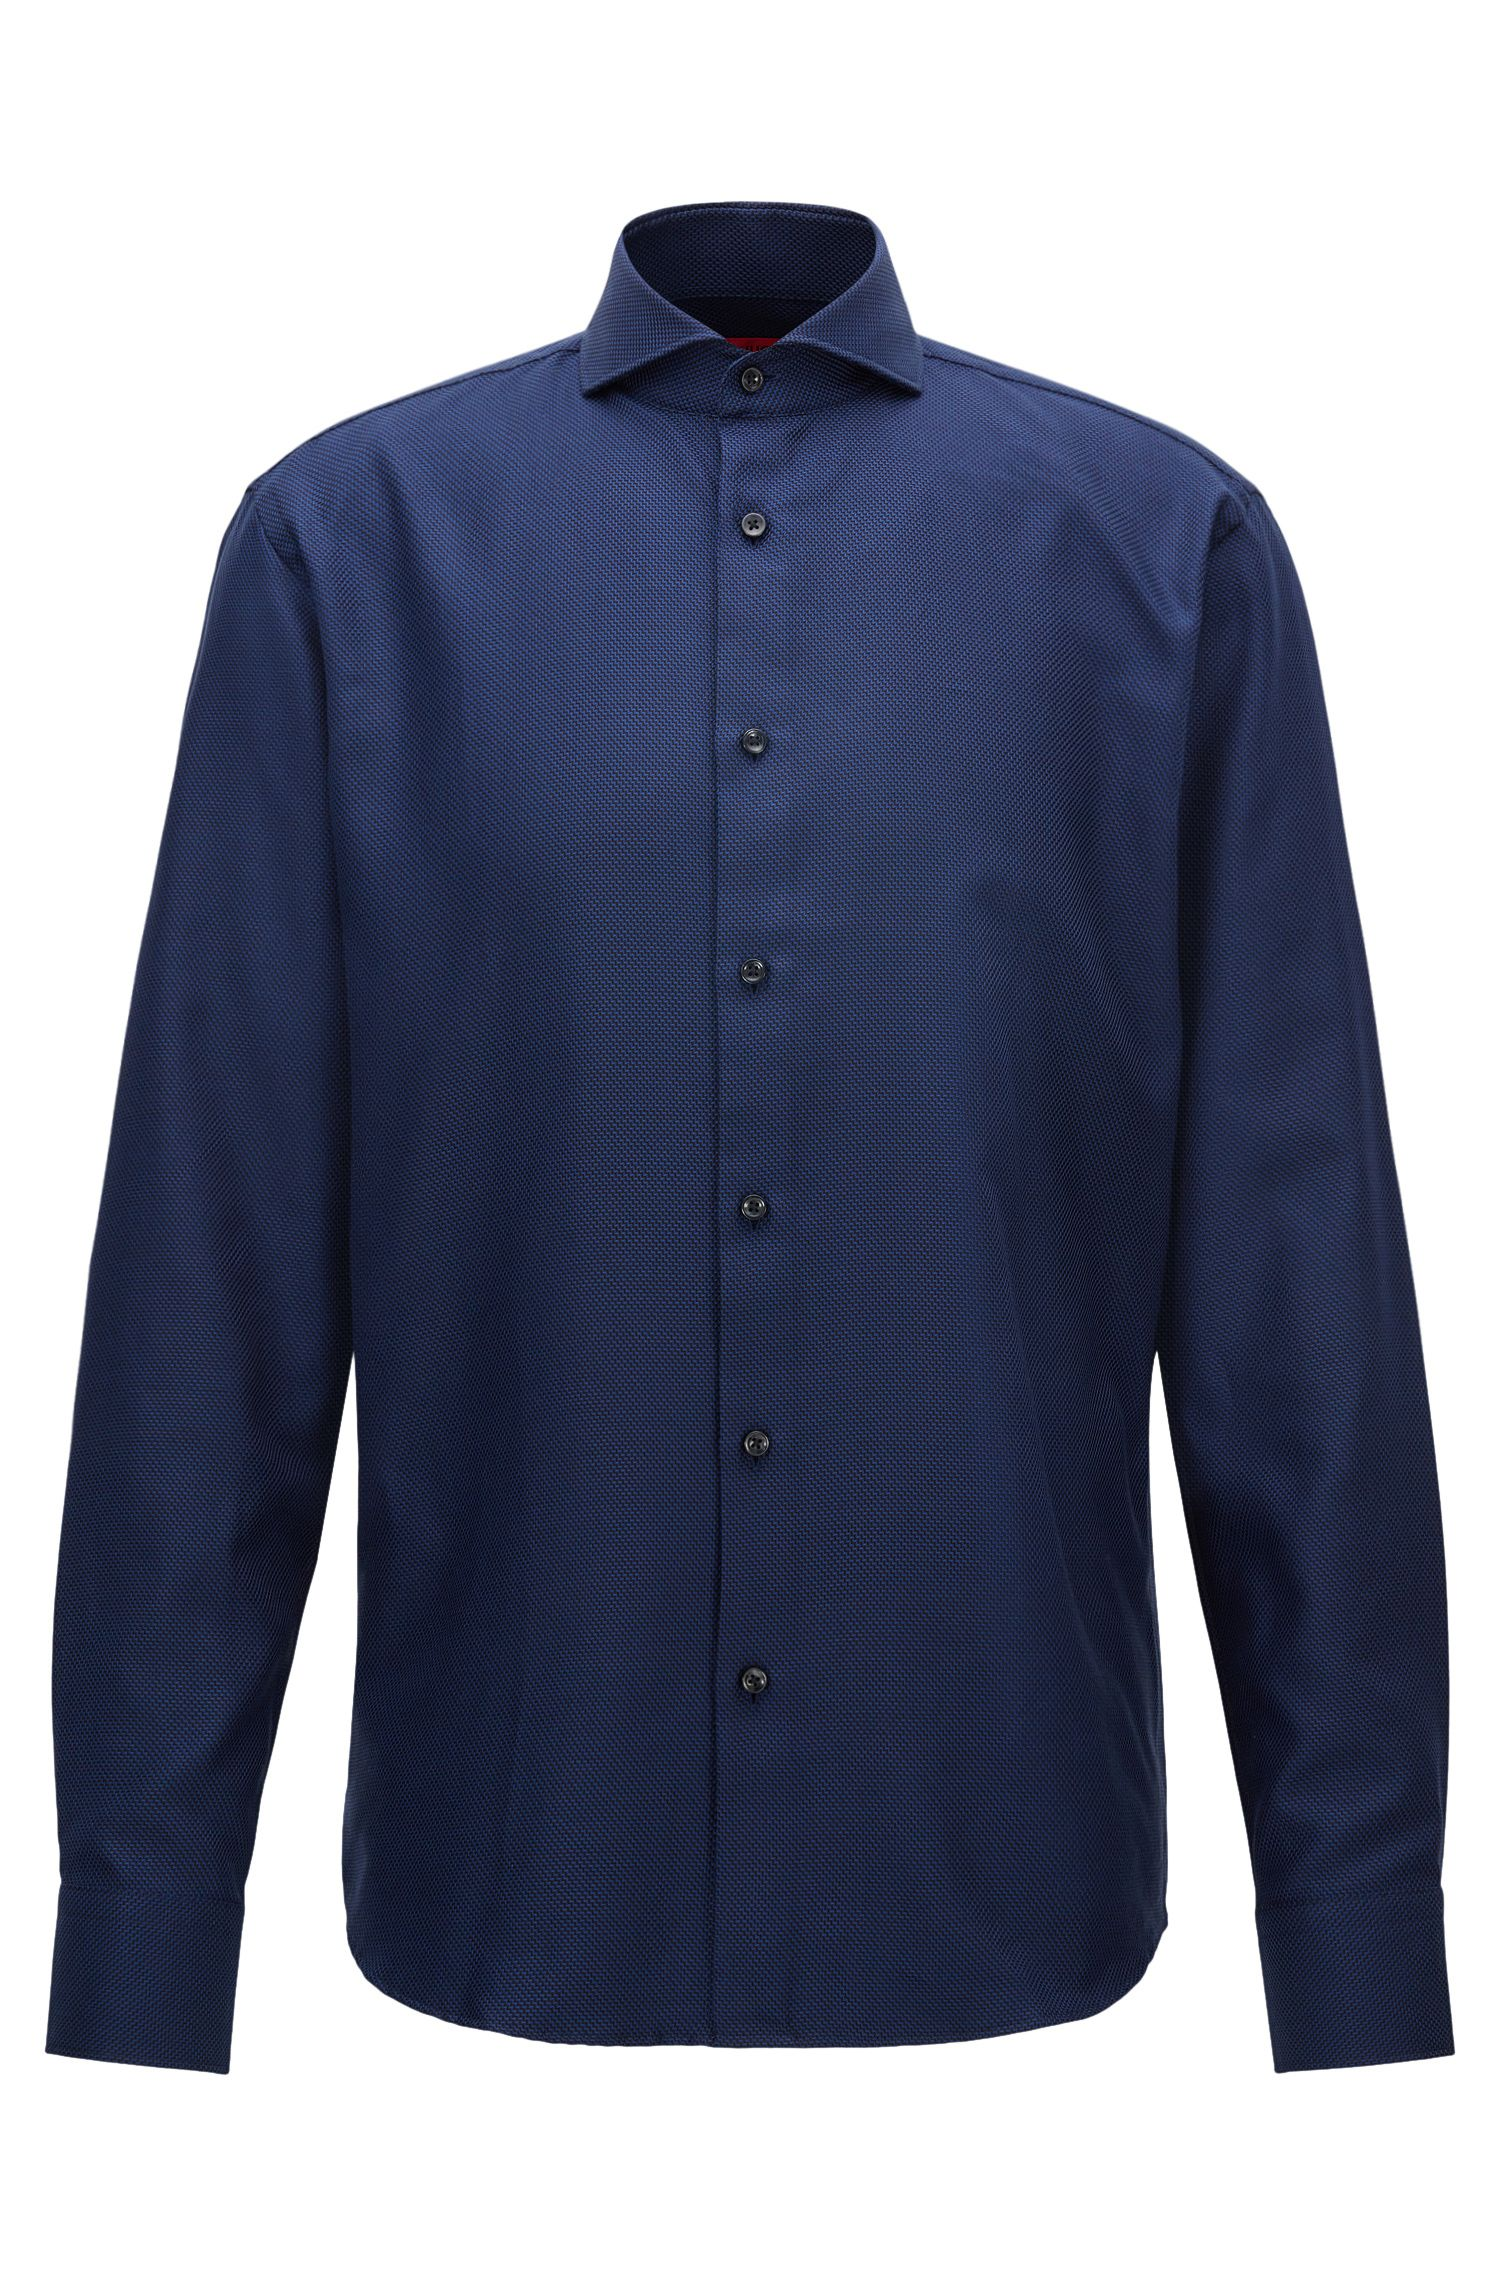 Regular-fit shirt in structured patterned cotton